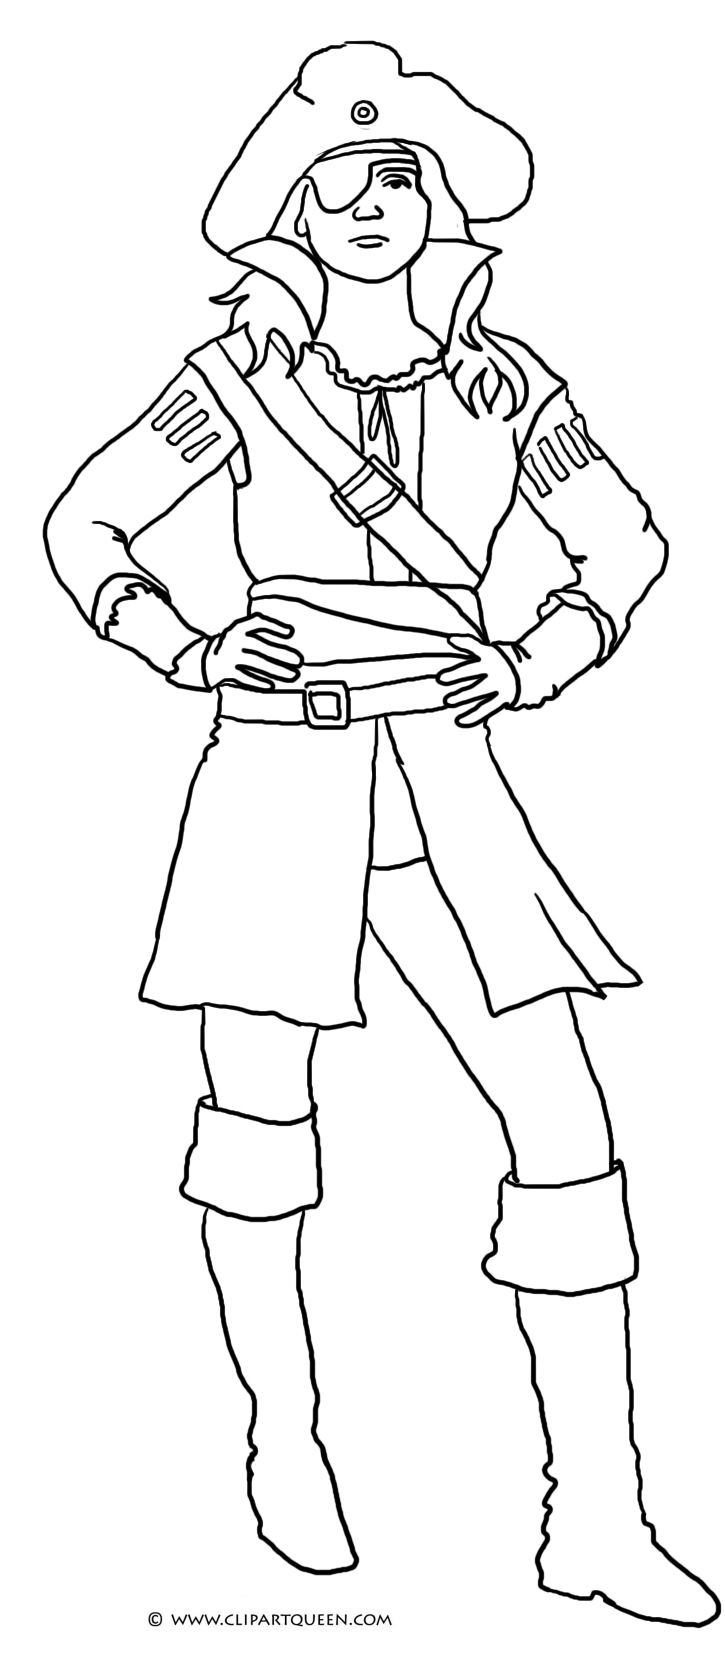 Coloring Pages Girl Pirate Coloring Pages pirate coloring pages girl